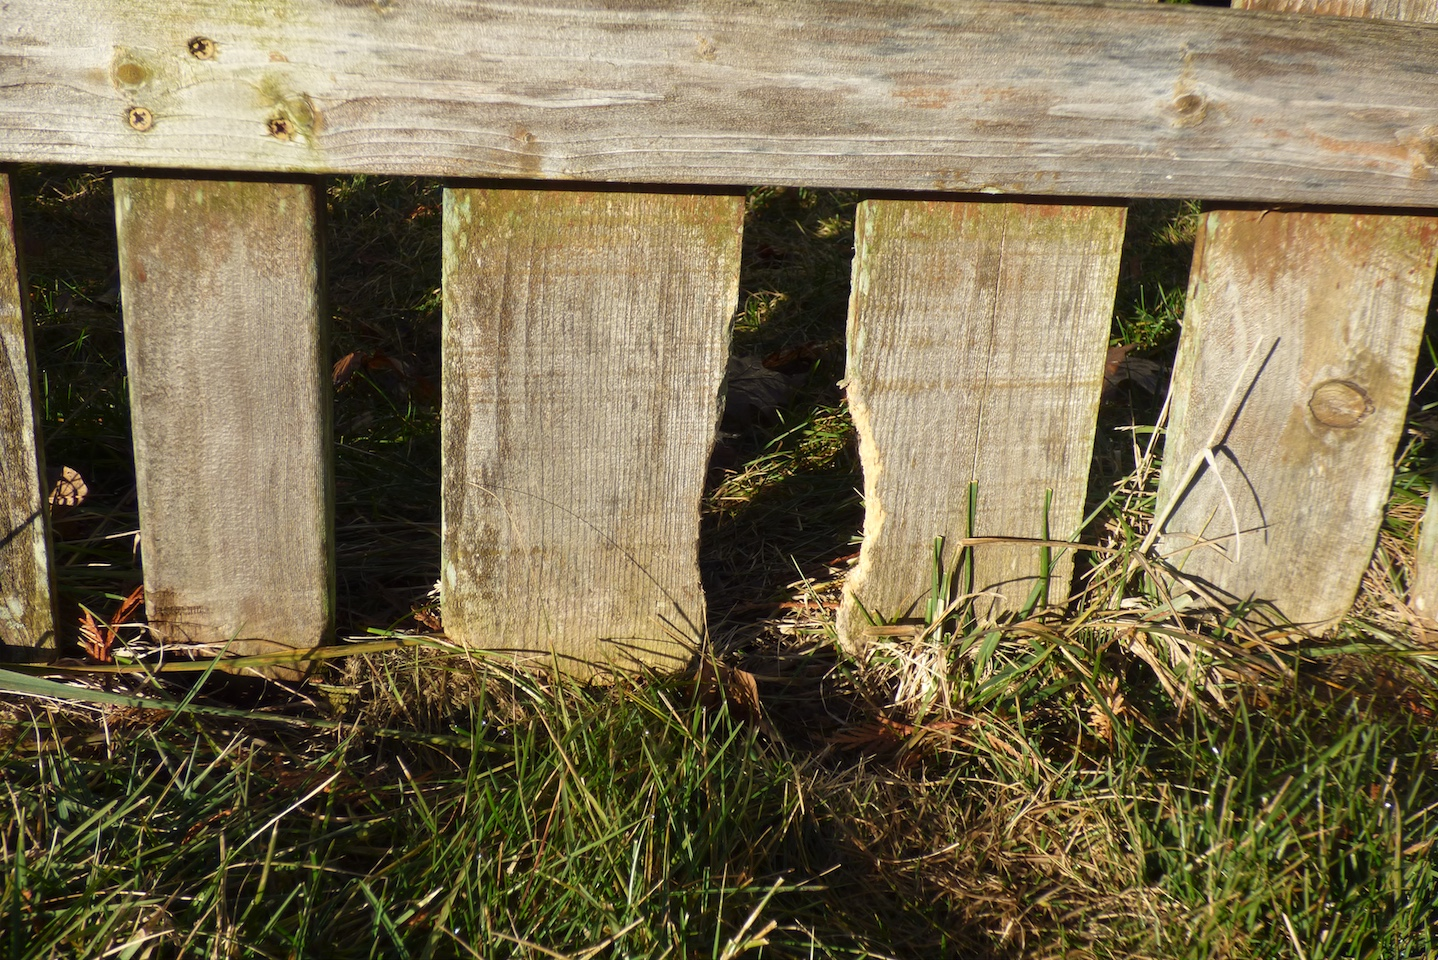 Rabbits teeth grow quickly so they chew on wood to help wear their teeth down. Here the rabbit has been gnawing on a wooden fence.